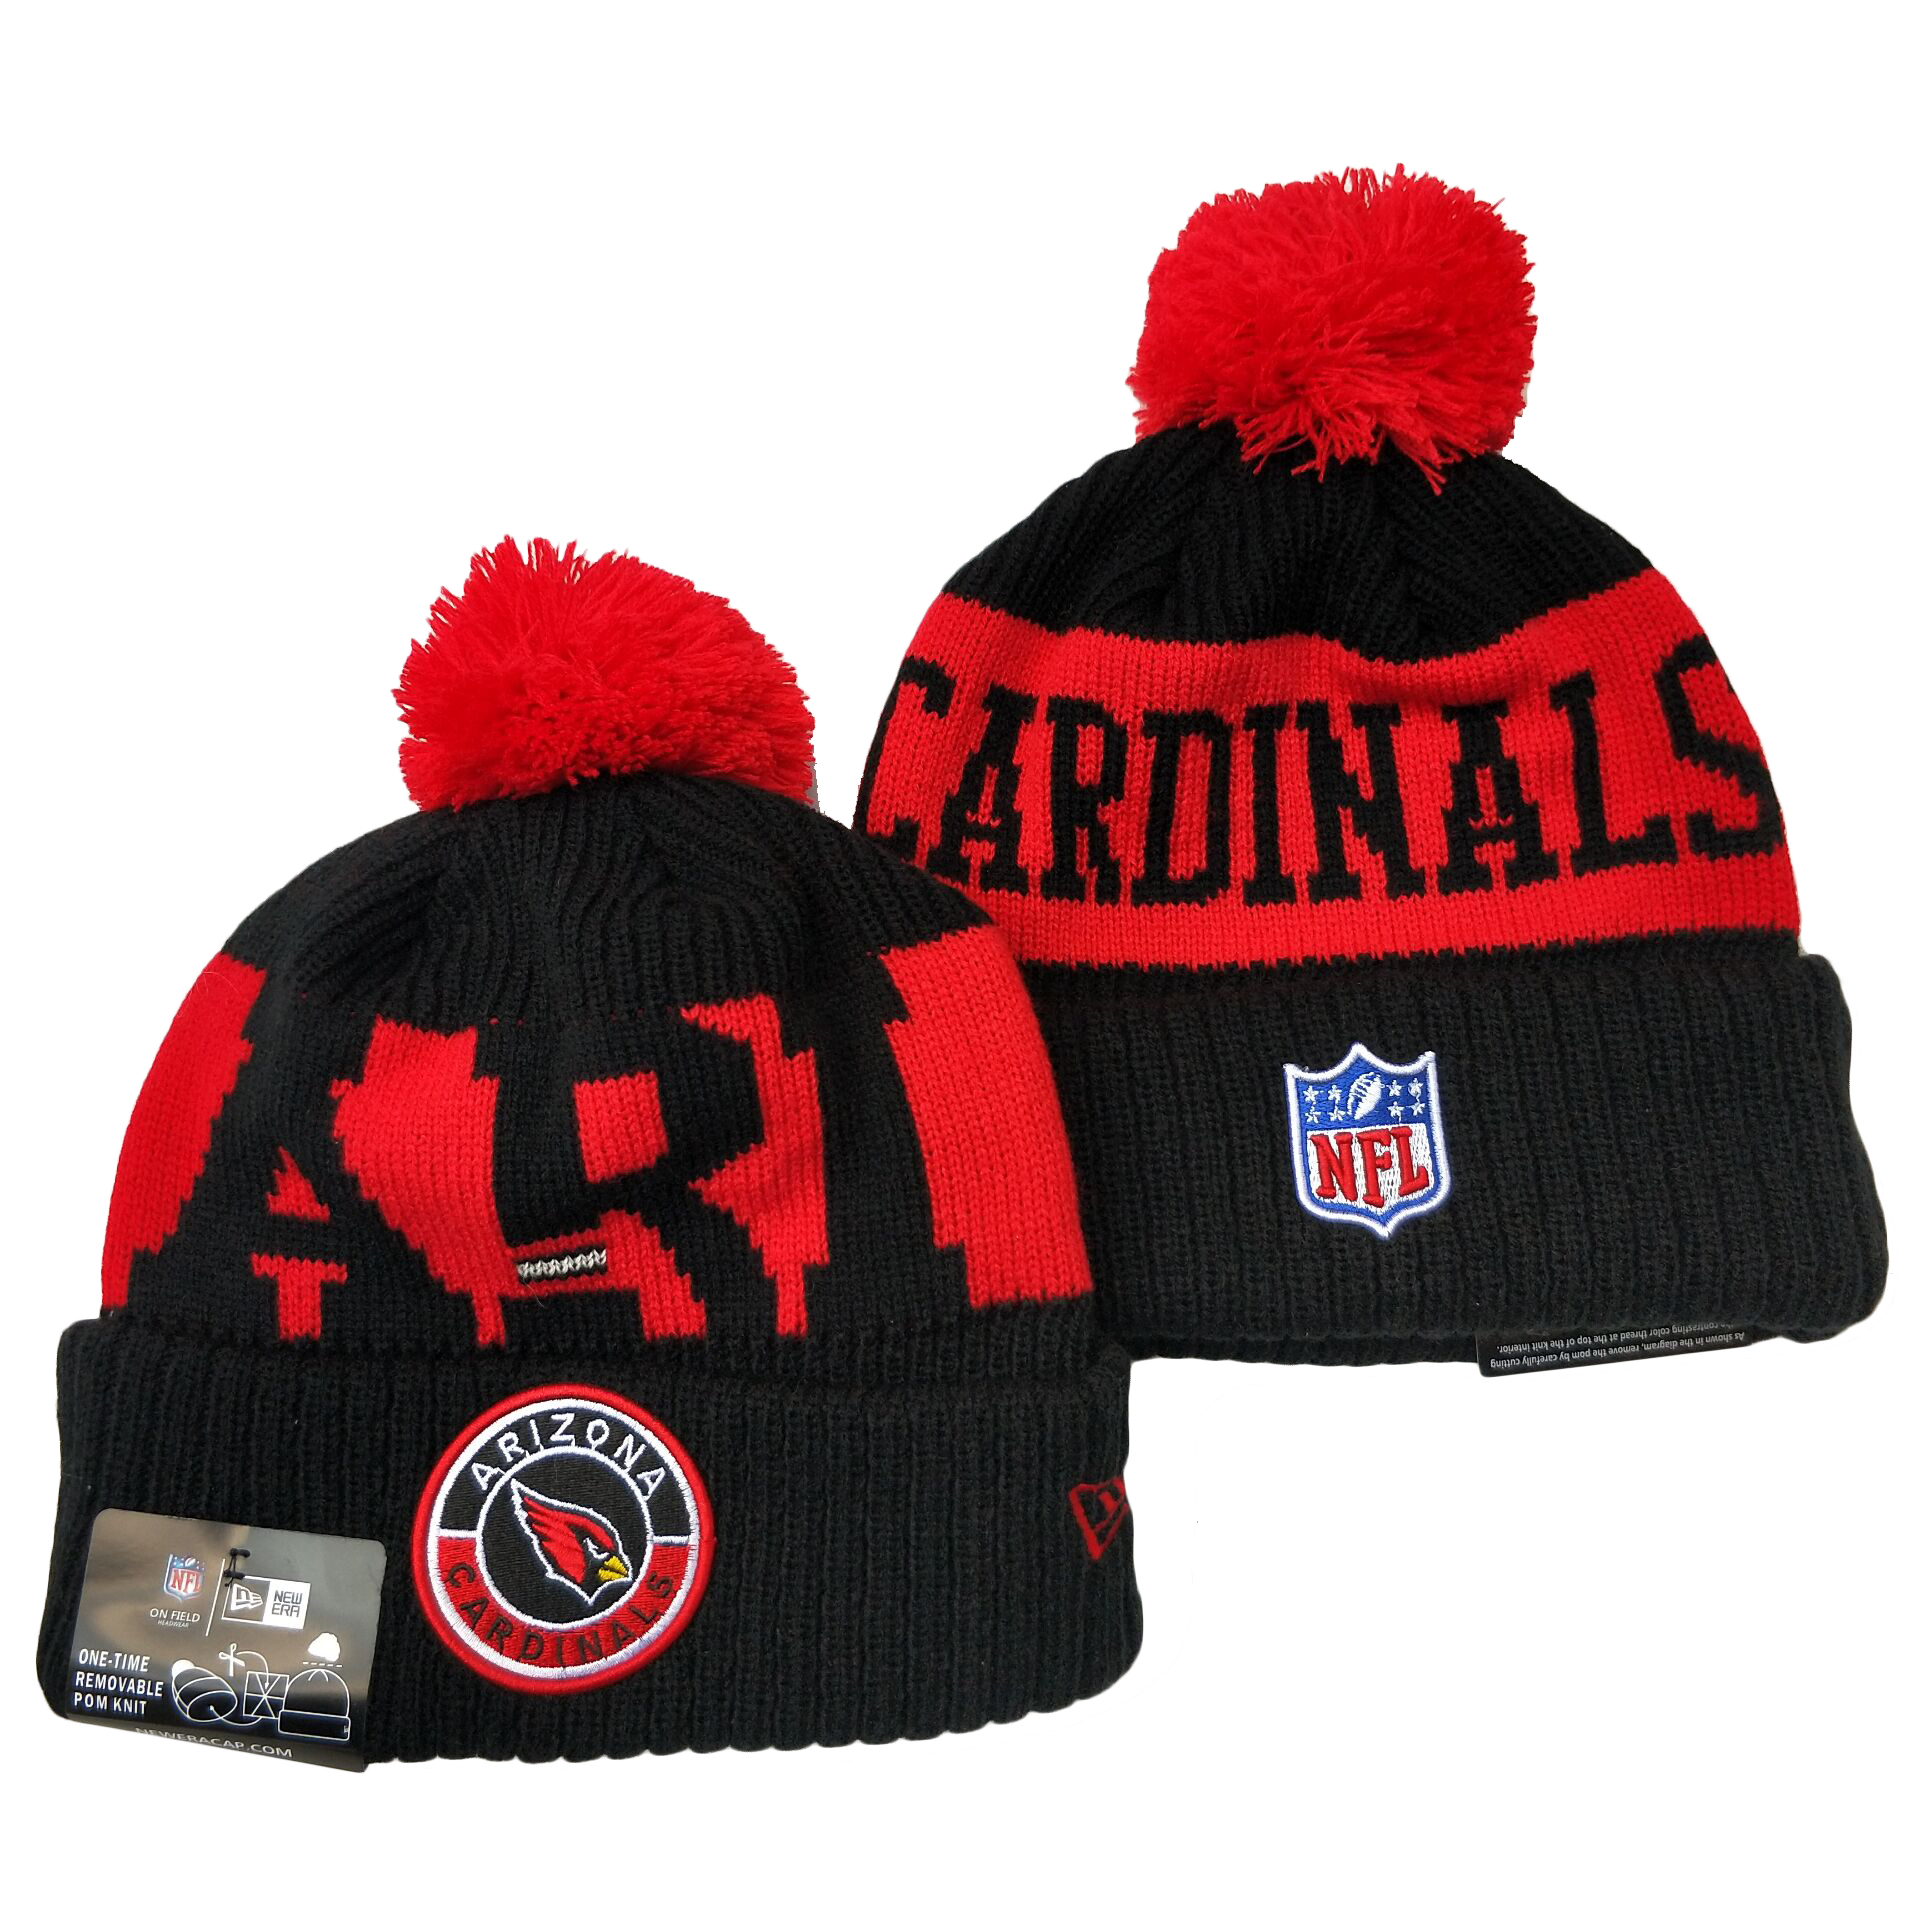 Arizona Cardinals Knit Hats 032